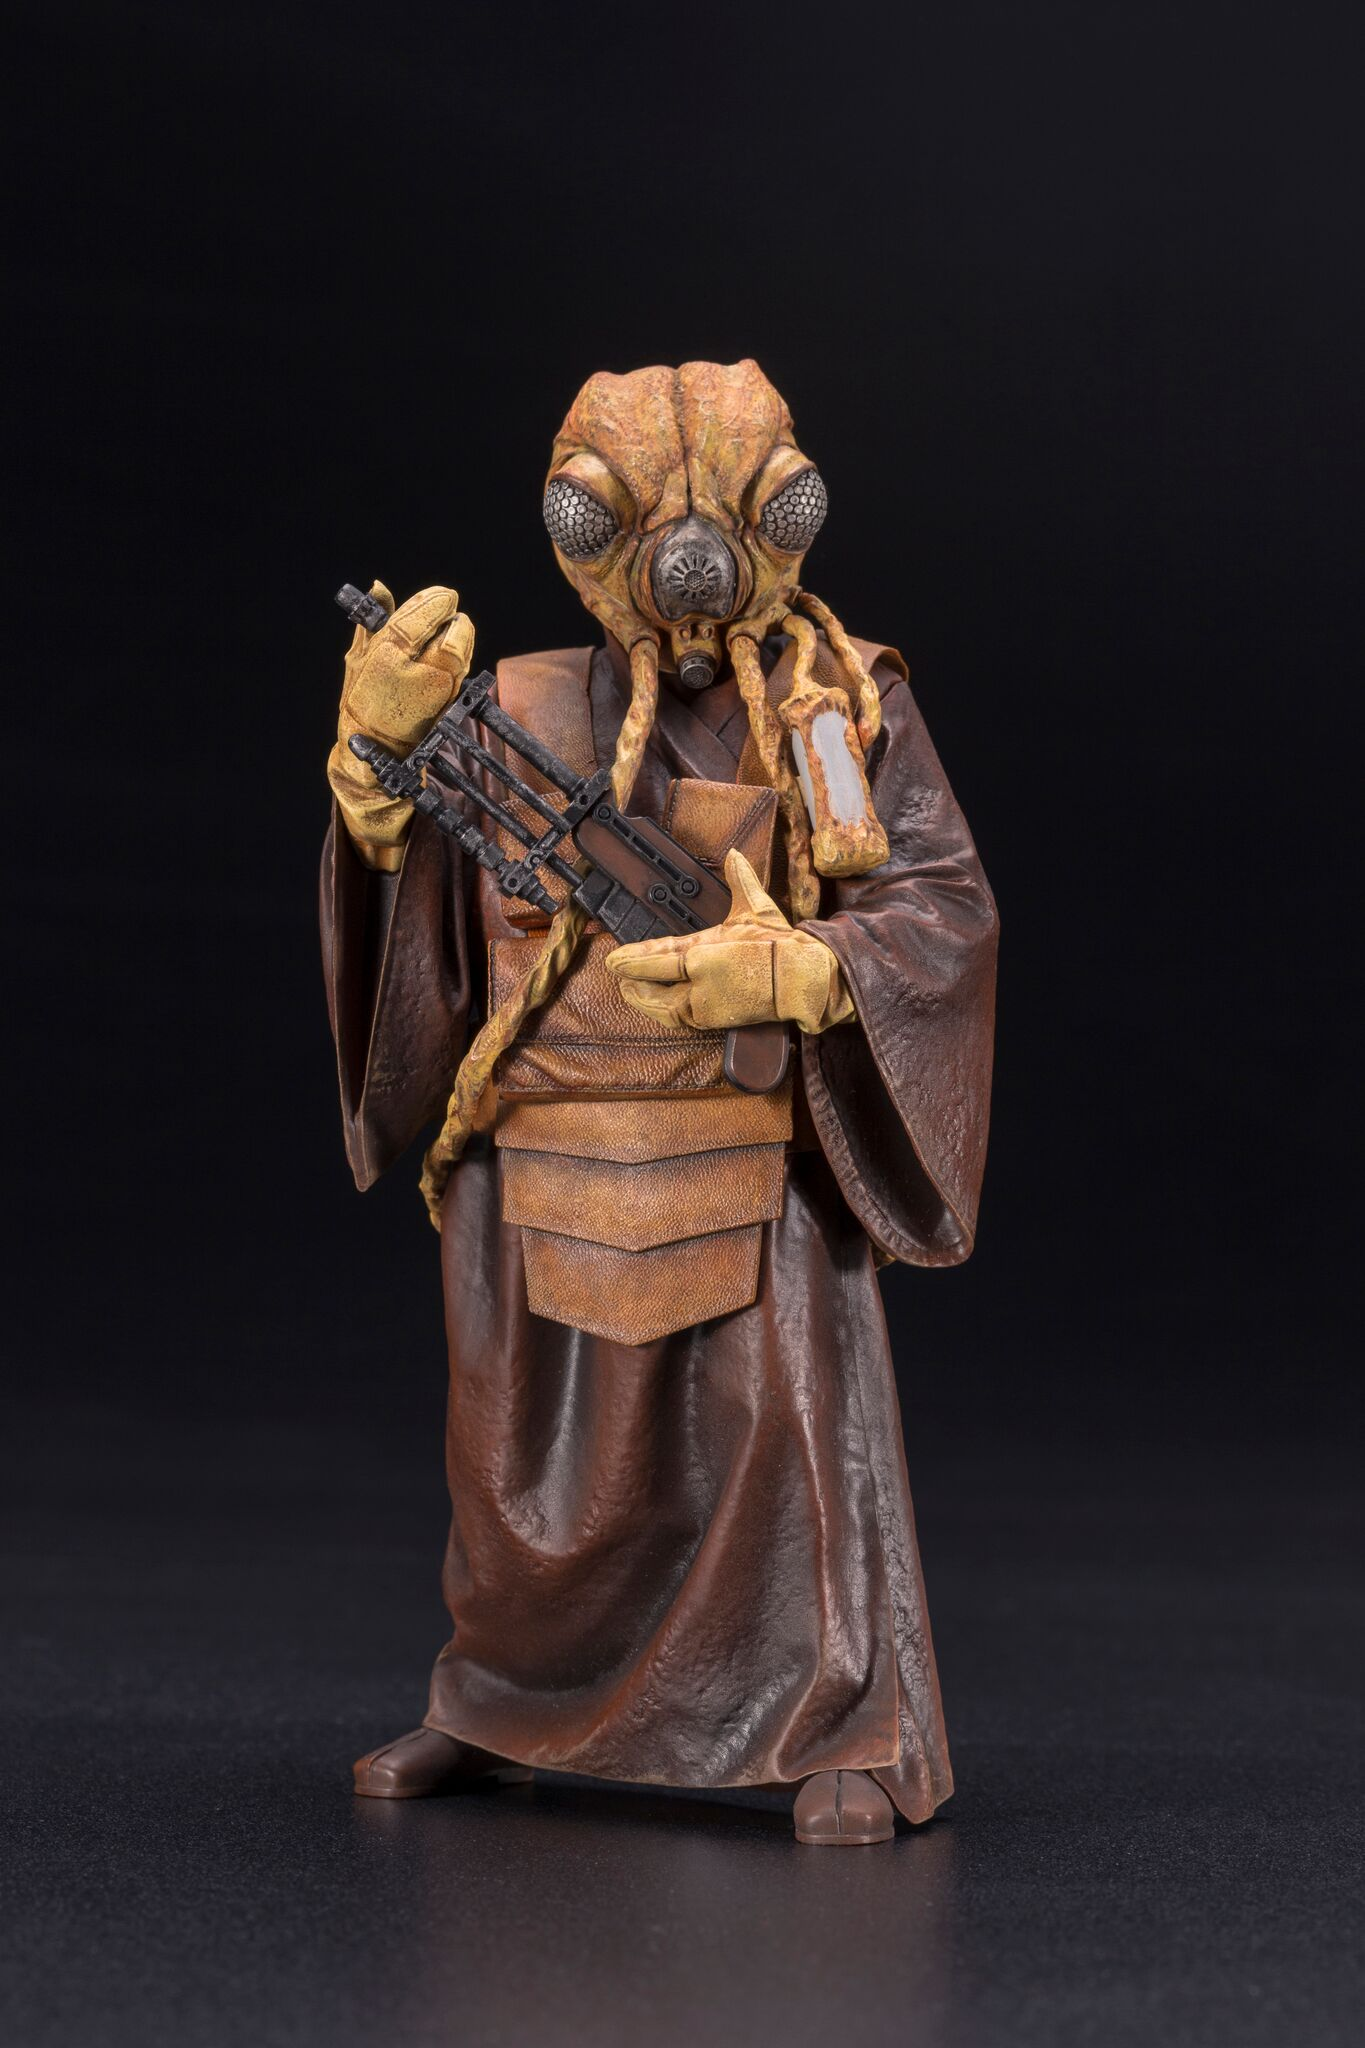 Kotobukiya Star Wars Zuckuss Bounty Hunter ARTFX+ Statue